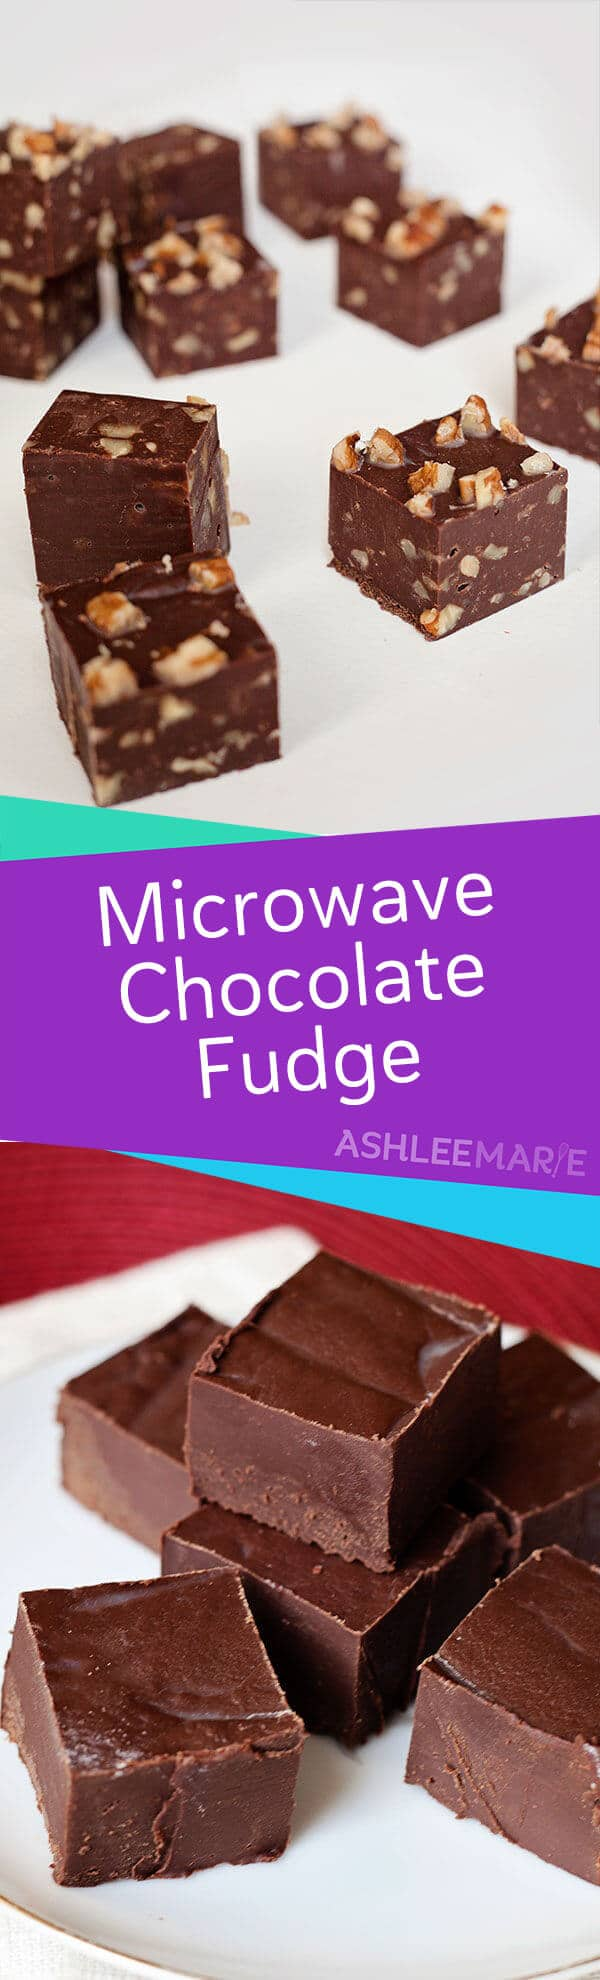 easy microwave chocolate fudge recipe